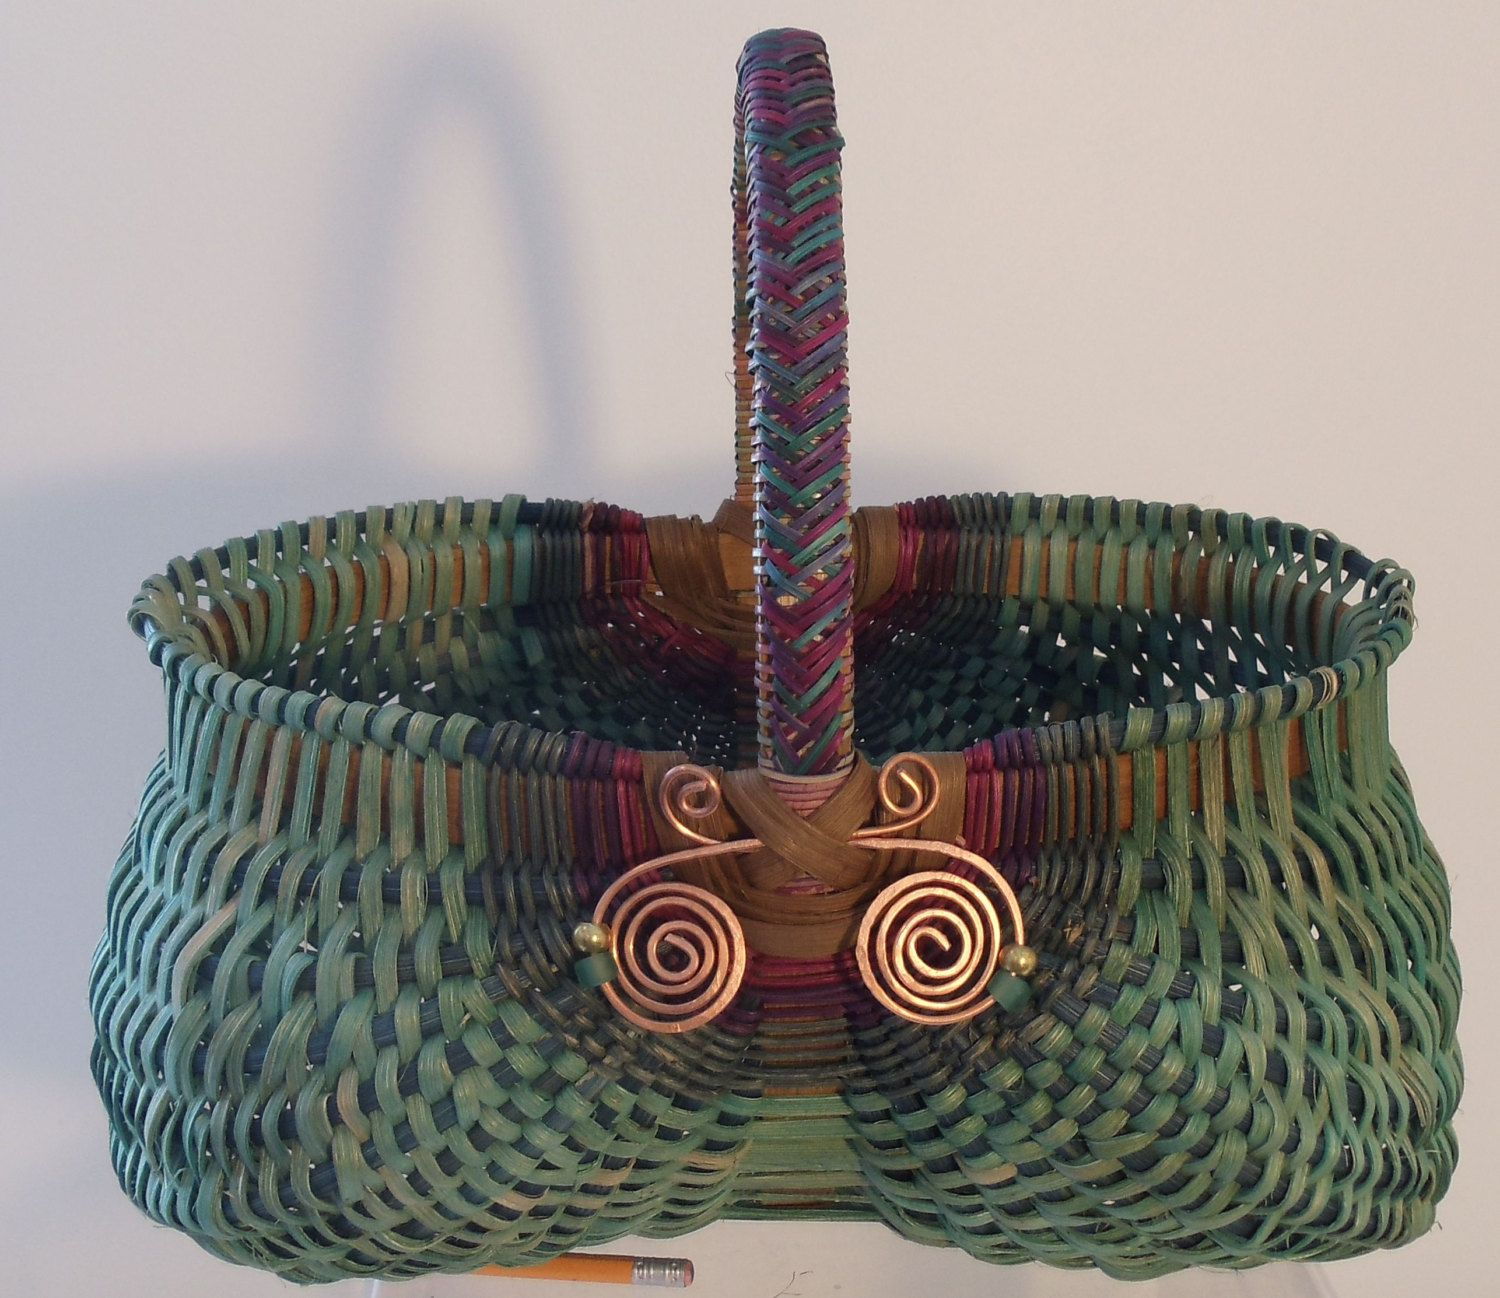 Hand woven oval BLUE EGG BASKET, Braided handle, copper bling, beads, Appalachian, primitive, J Choate Basketry.